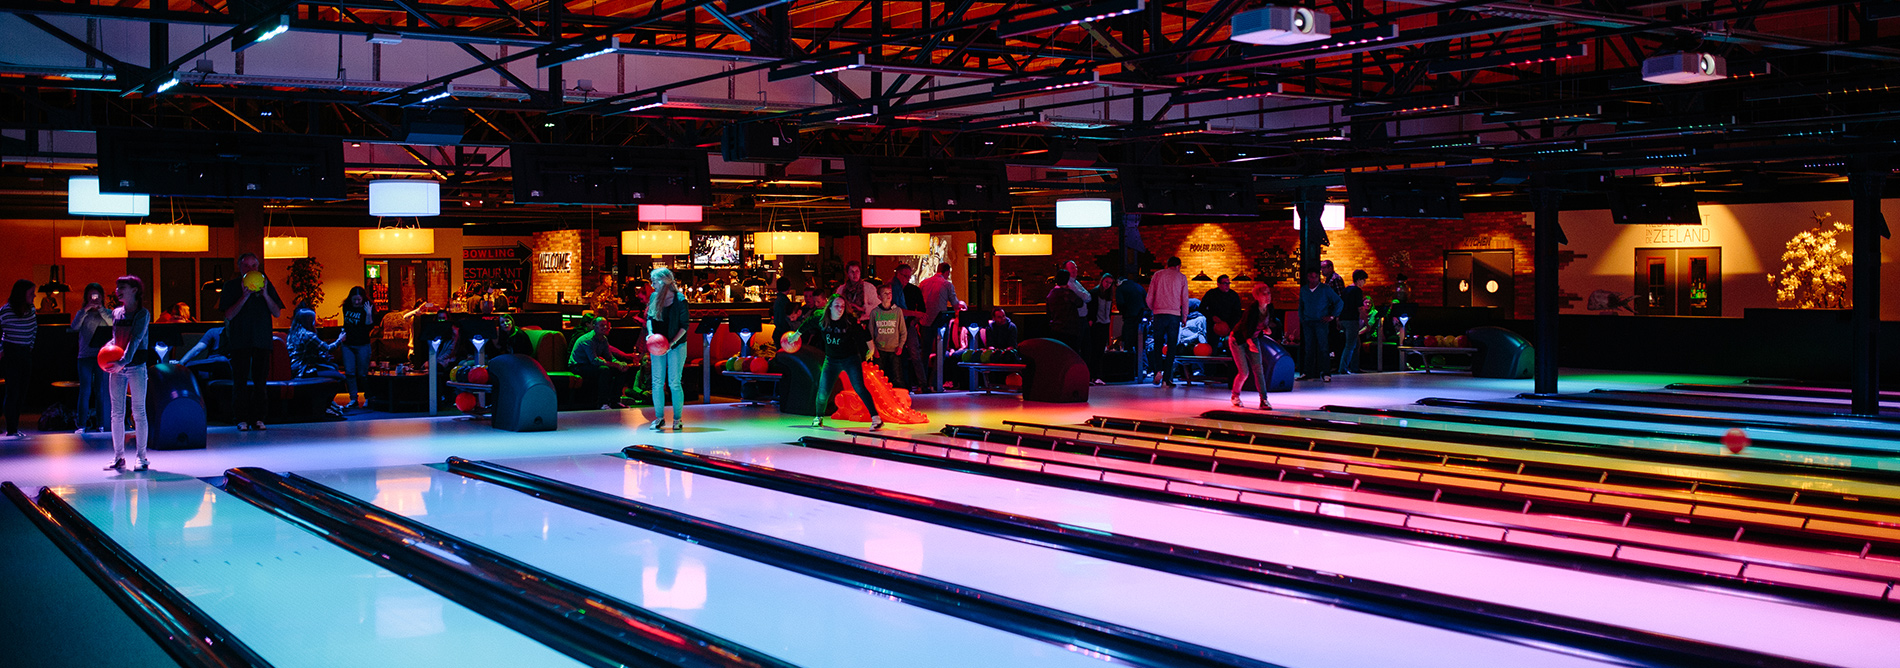 QUBICAAMF-bowling-boutique-Bowling-&-Resto-Lounge-banner.jpg